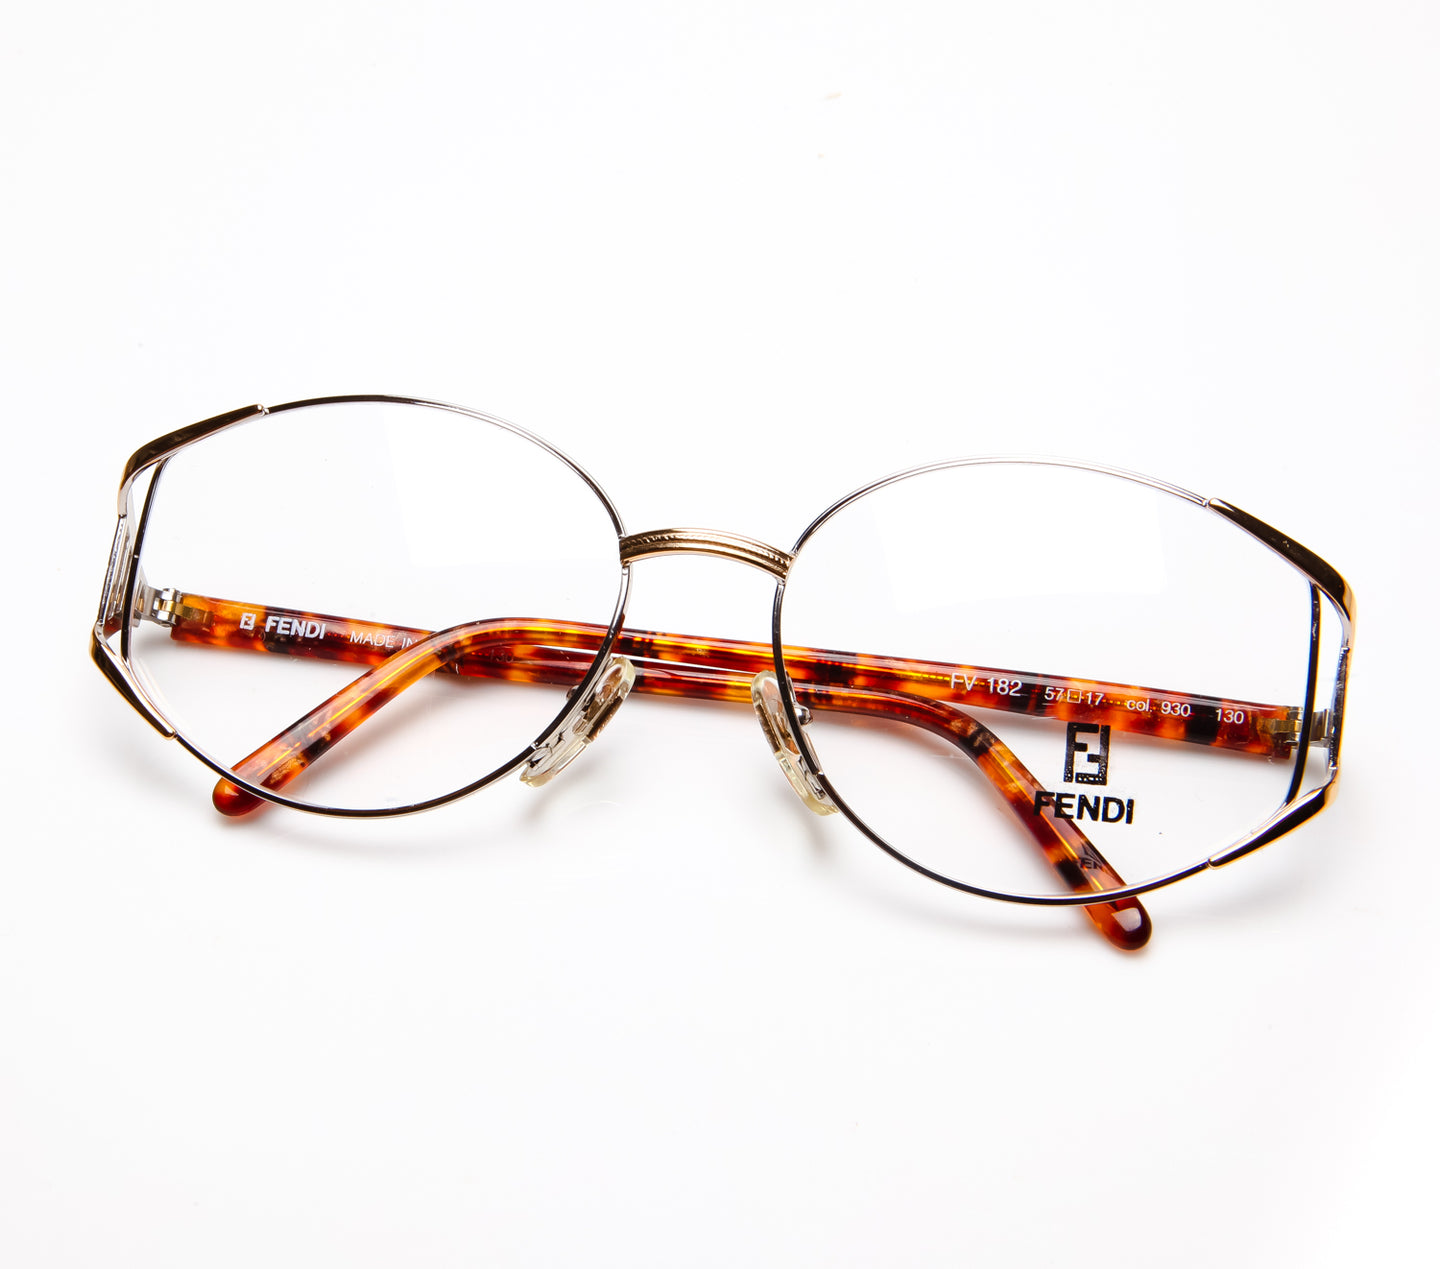 Fendi FV 182 930, Fendi , glasses frames, eyeglasses online, eyeglass frames, mens glasses, womens glasses, buy glasses online, designer eyeglasses, vintage sunglasses, retro sunglasses, vintage glasses, sunglass, eyeglass, glasses, lens, vintage frames company, vf